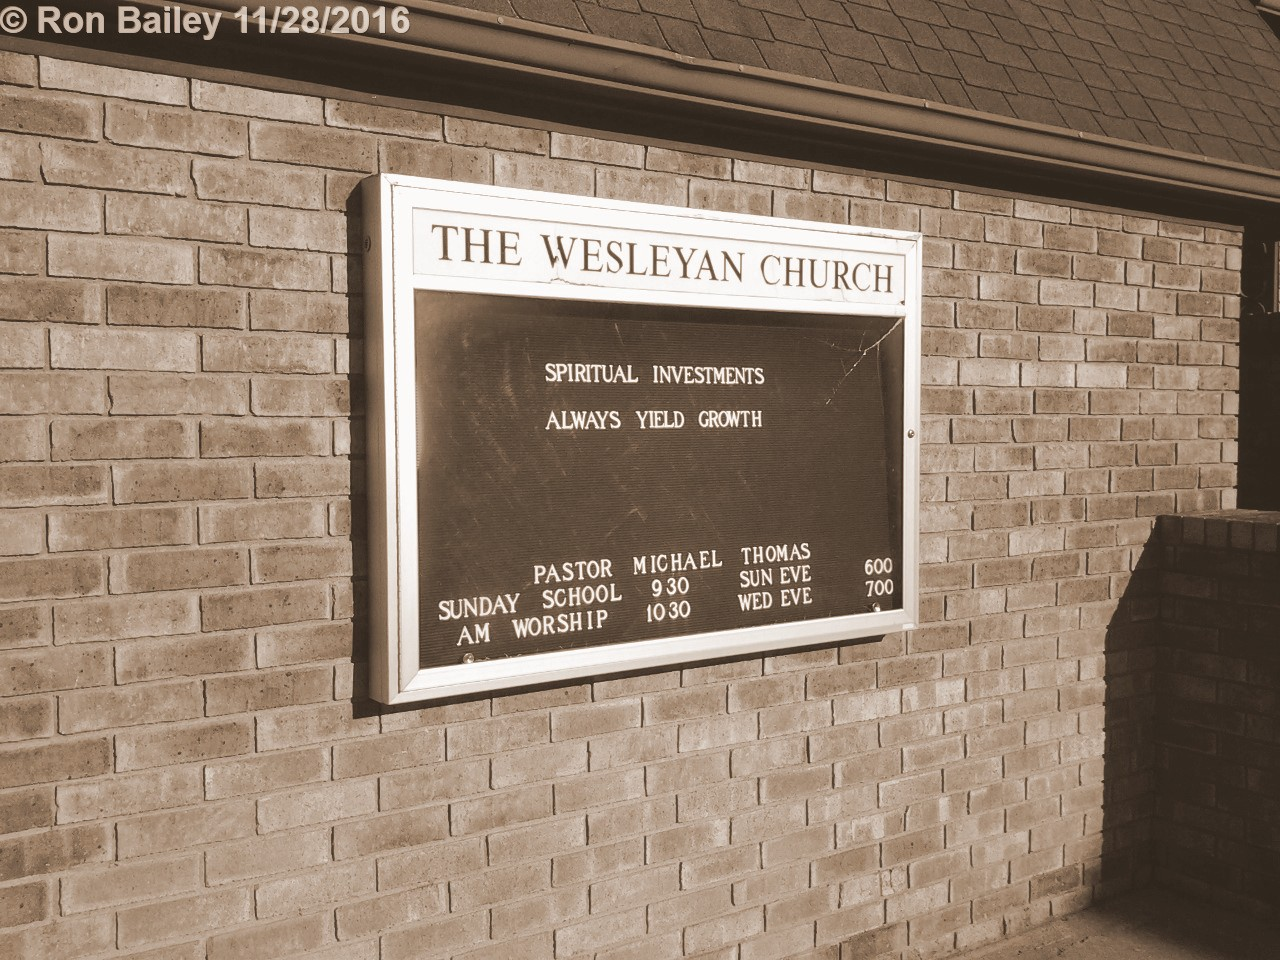 Nelsonville Wesleyan Church Sepia 11-27-2016 2-26-04 PM